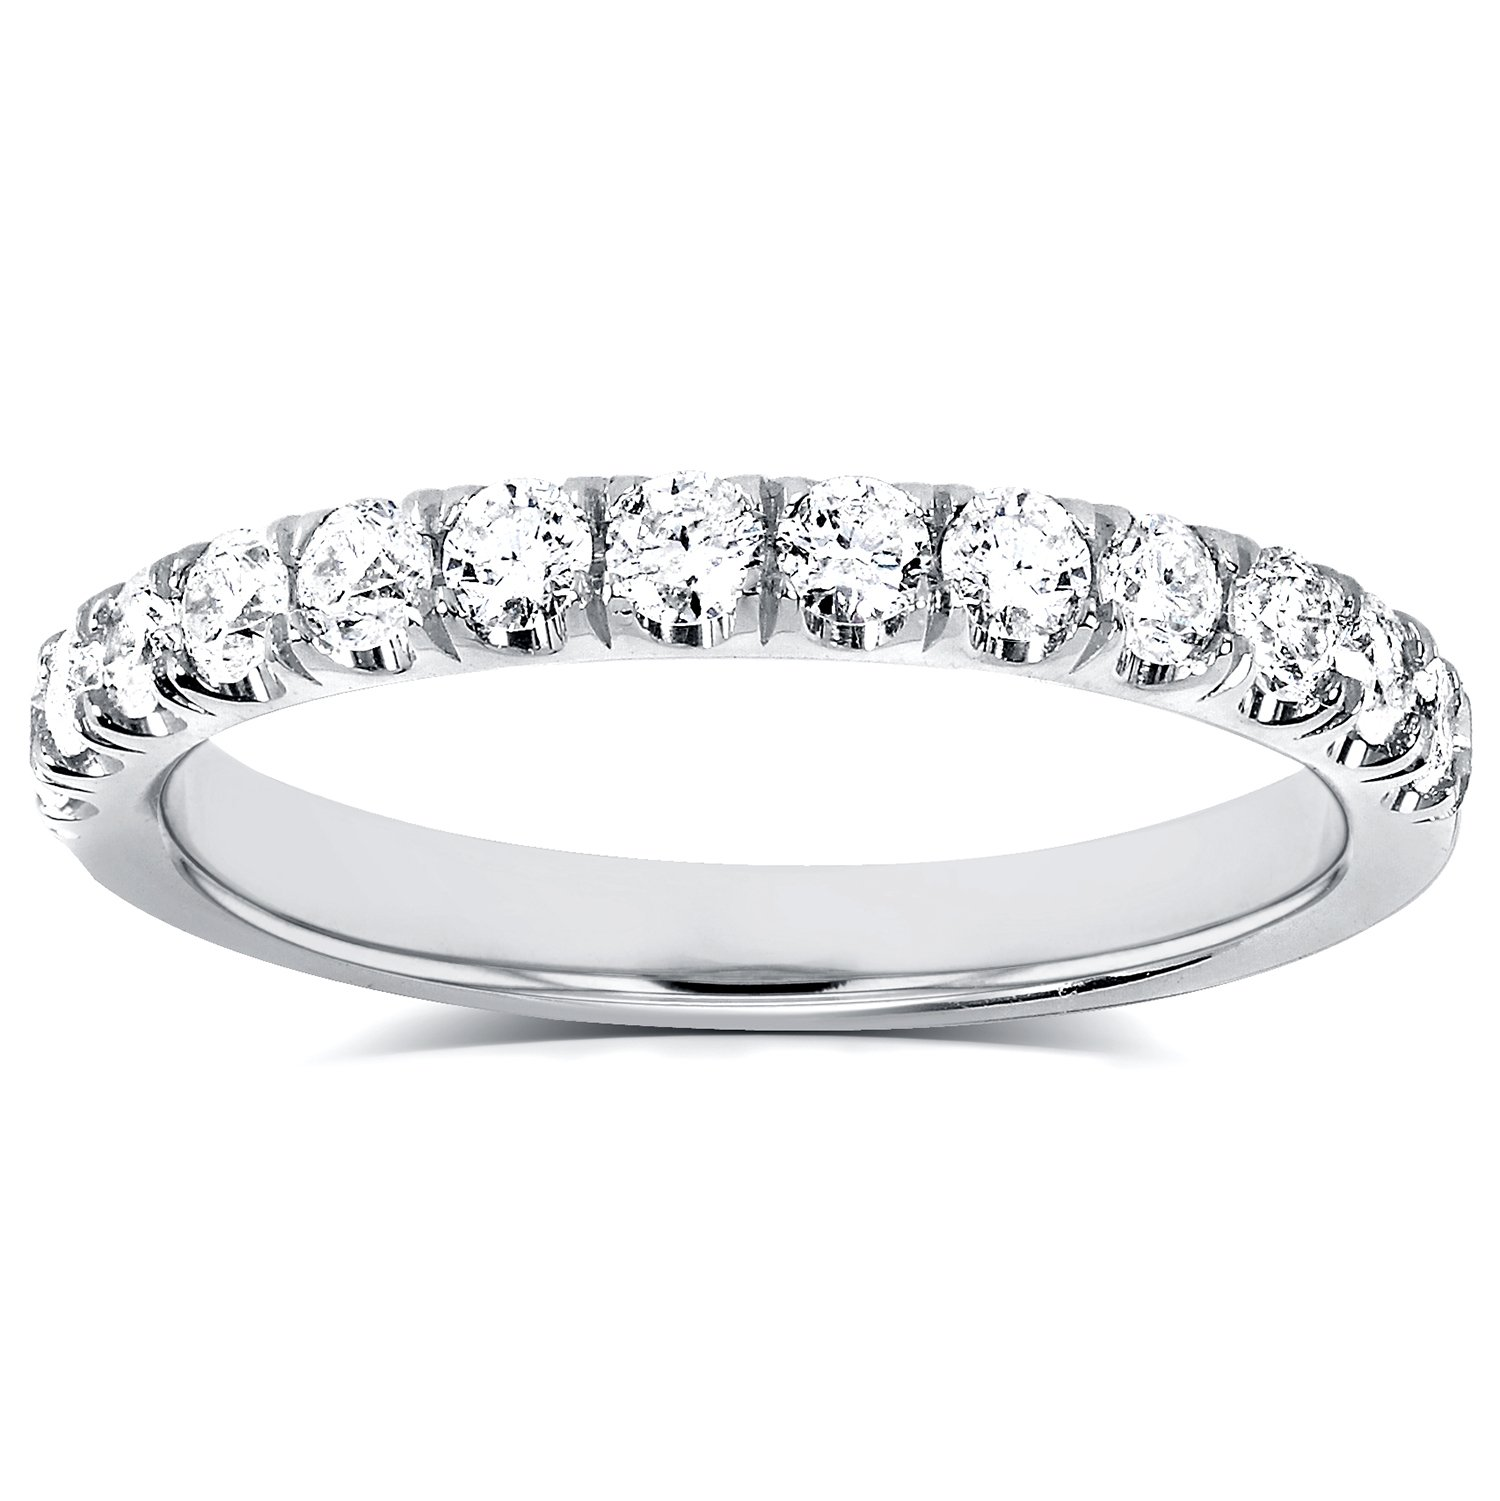 Diamond Comfort Fit Flame French Pave Band 1/2 carat (ctw) in 14K White Gold by Kobelli (Image #1)